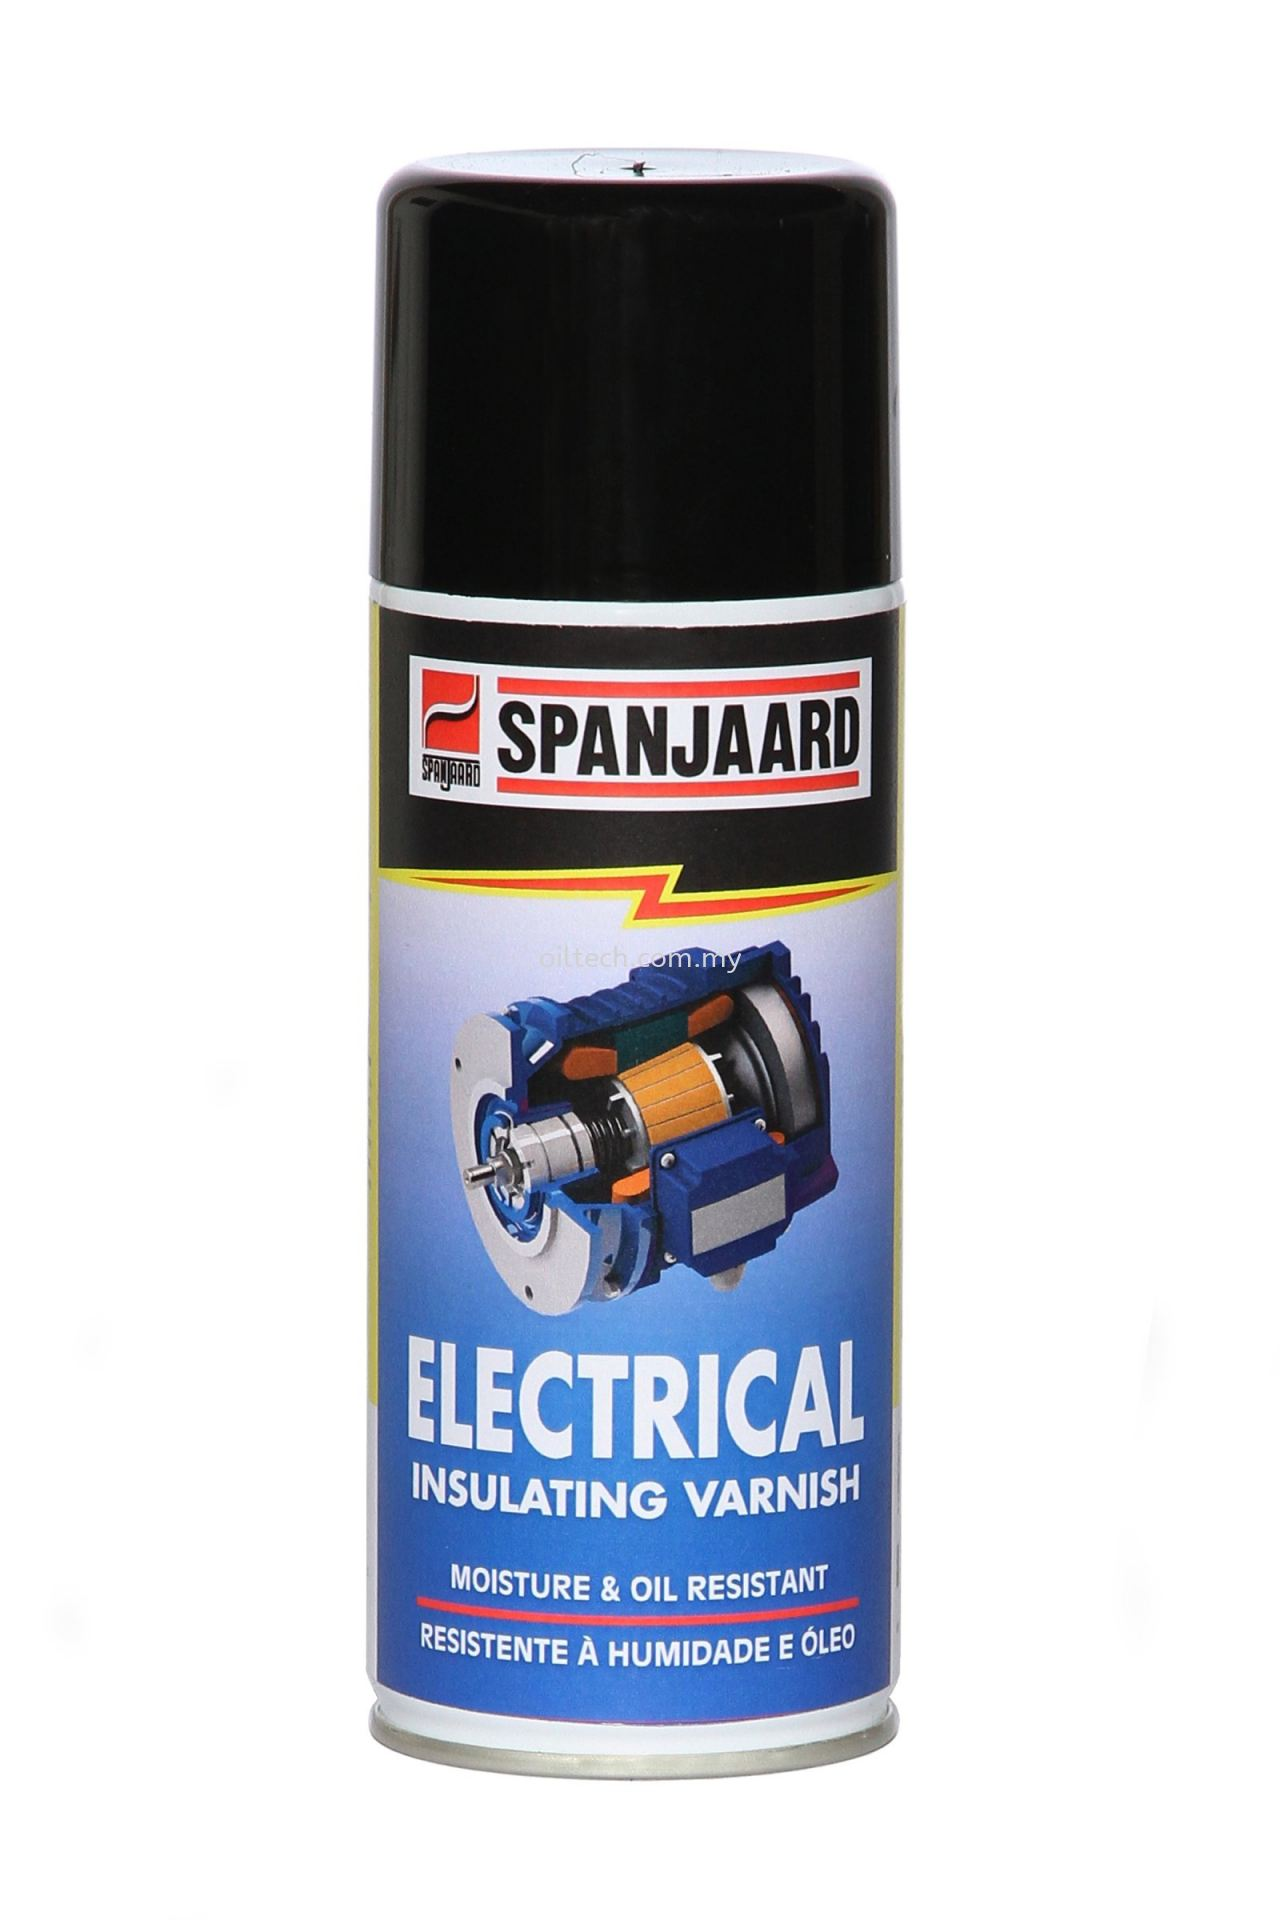 Electrical Insulating Varnish Spray - Spanjaard Malaysia